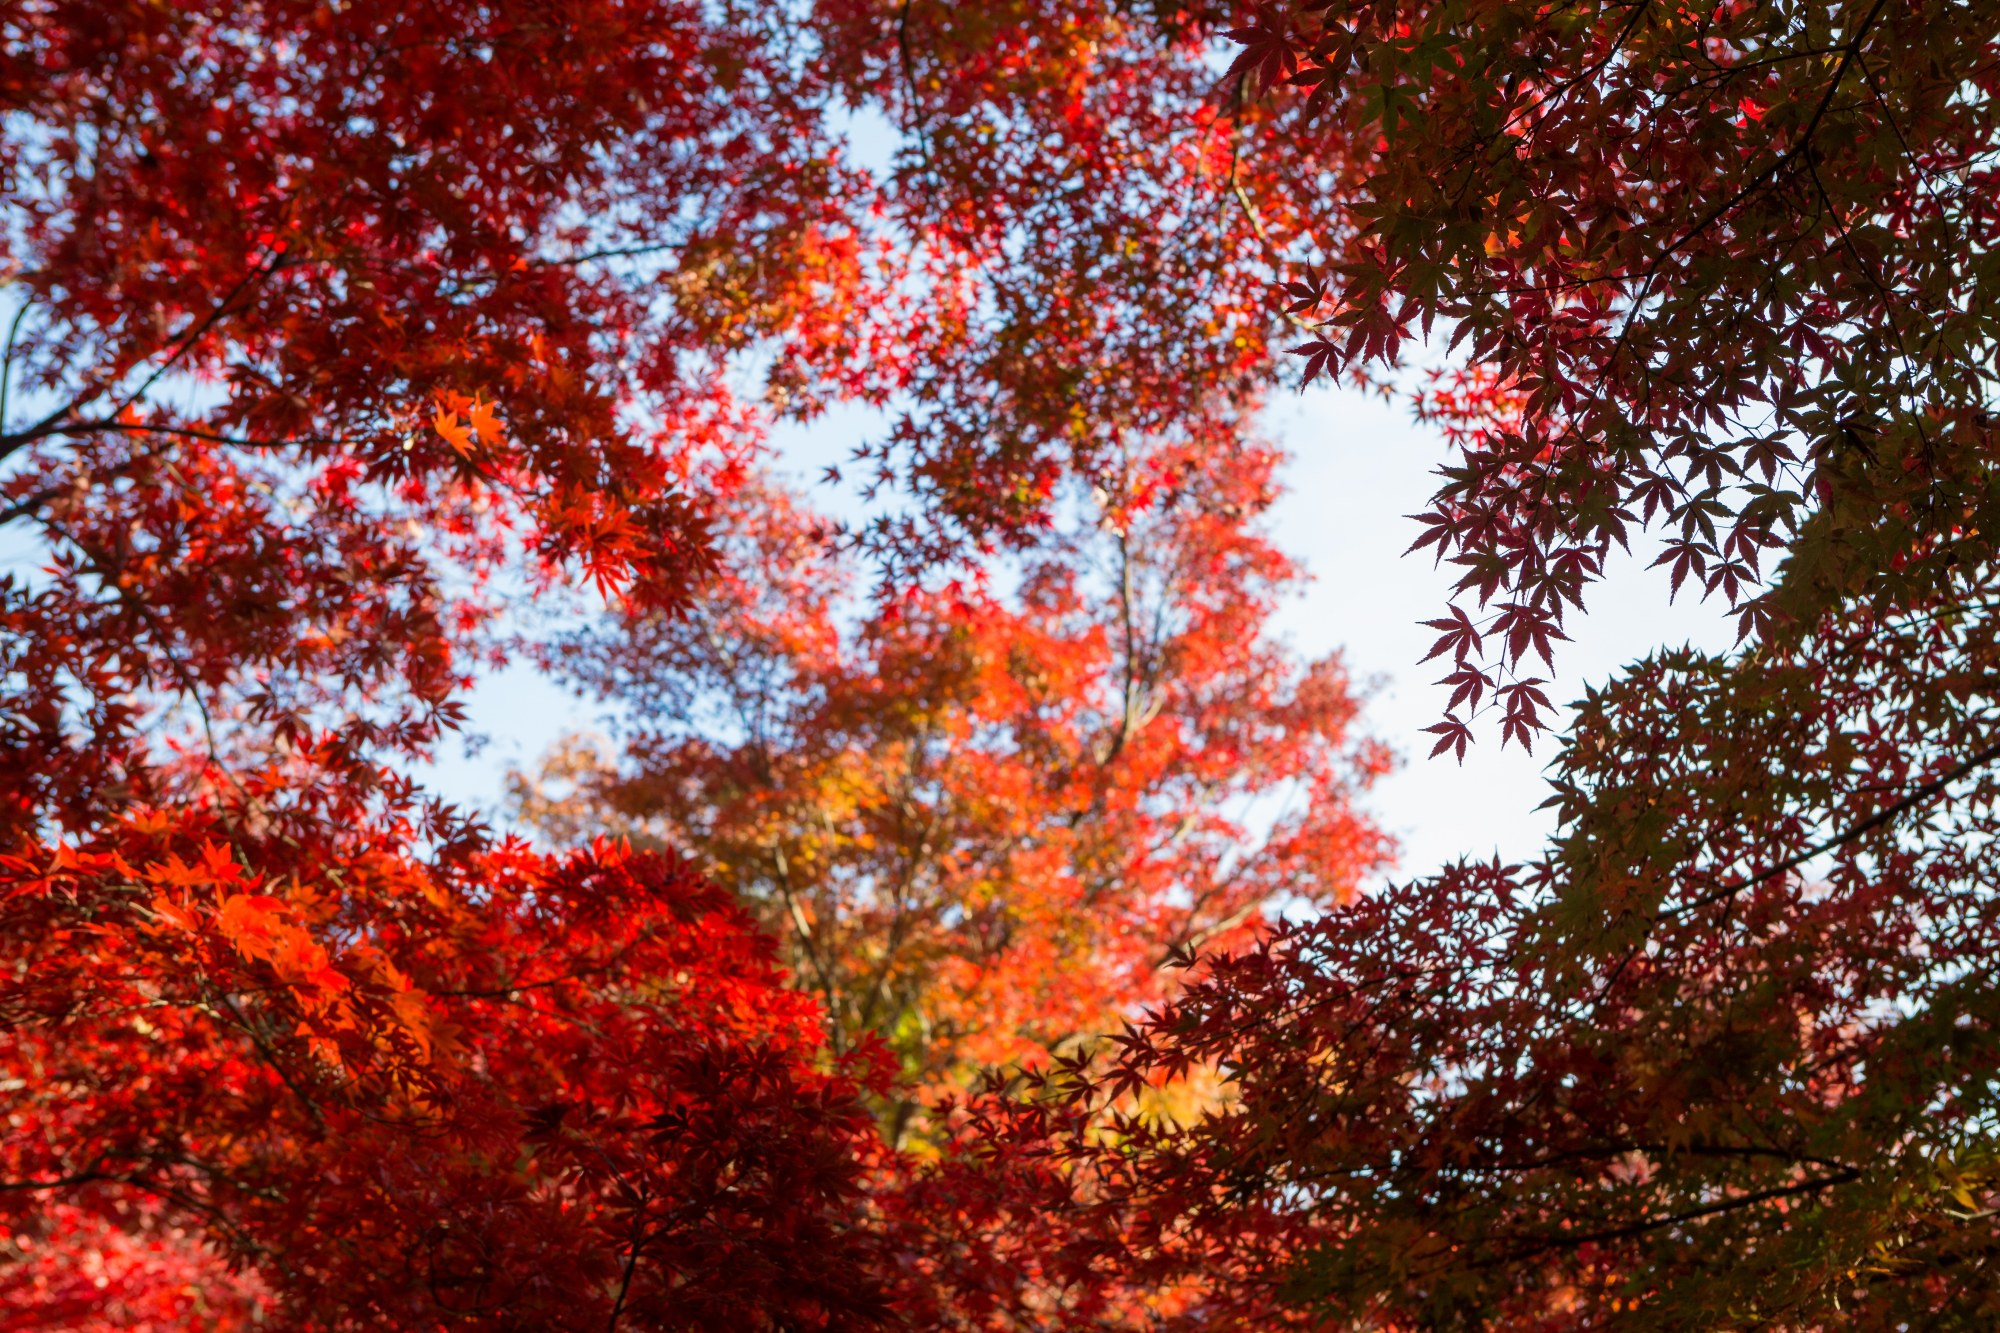 Autumn Leaves #9 example image 1